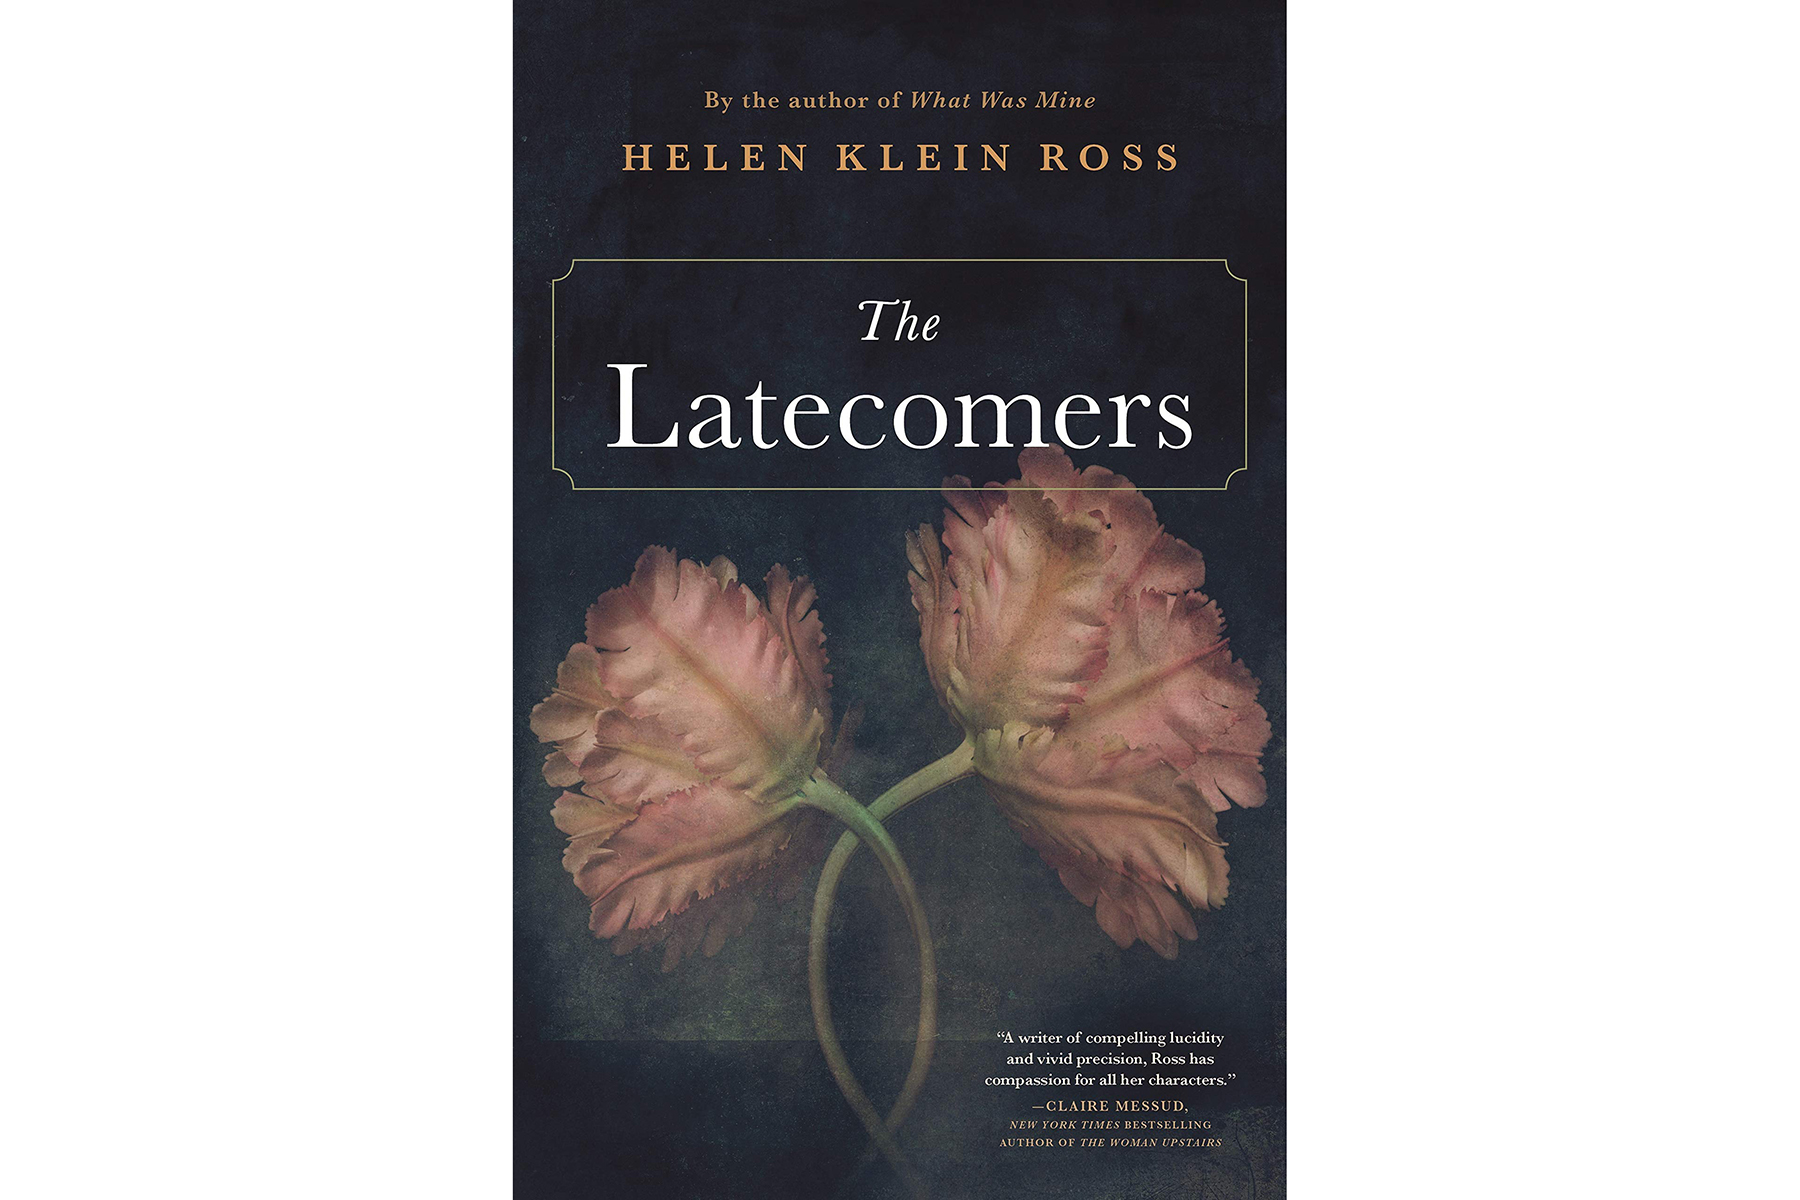 The Latecomers, by Helen Klein Ross